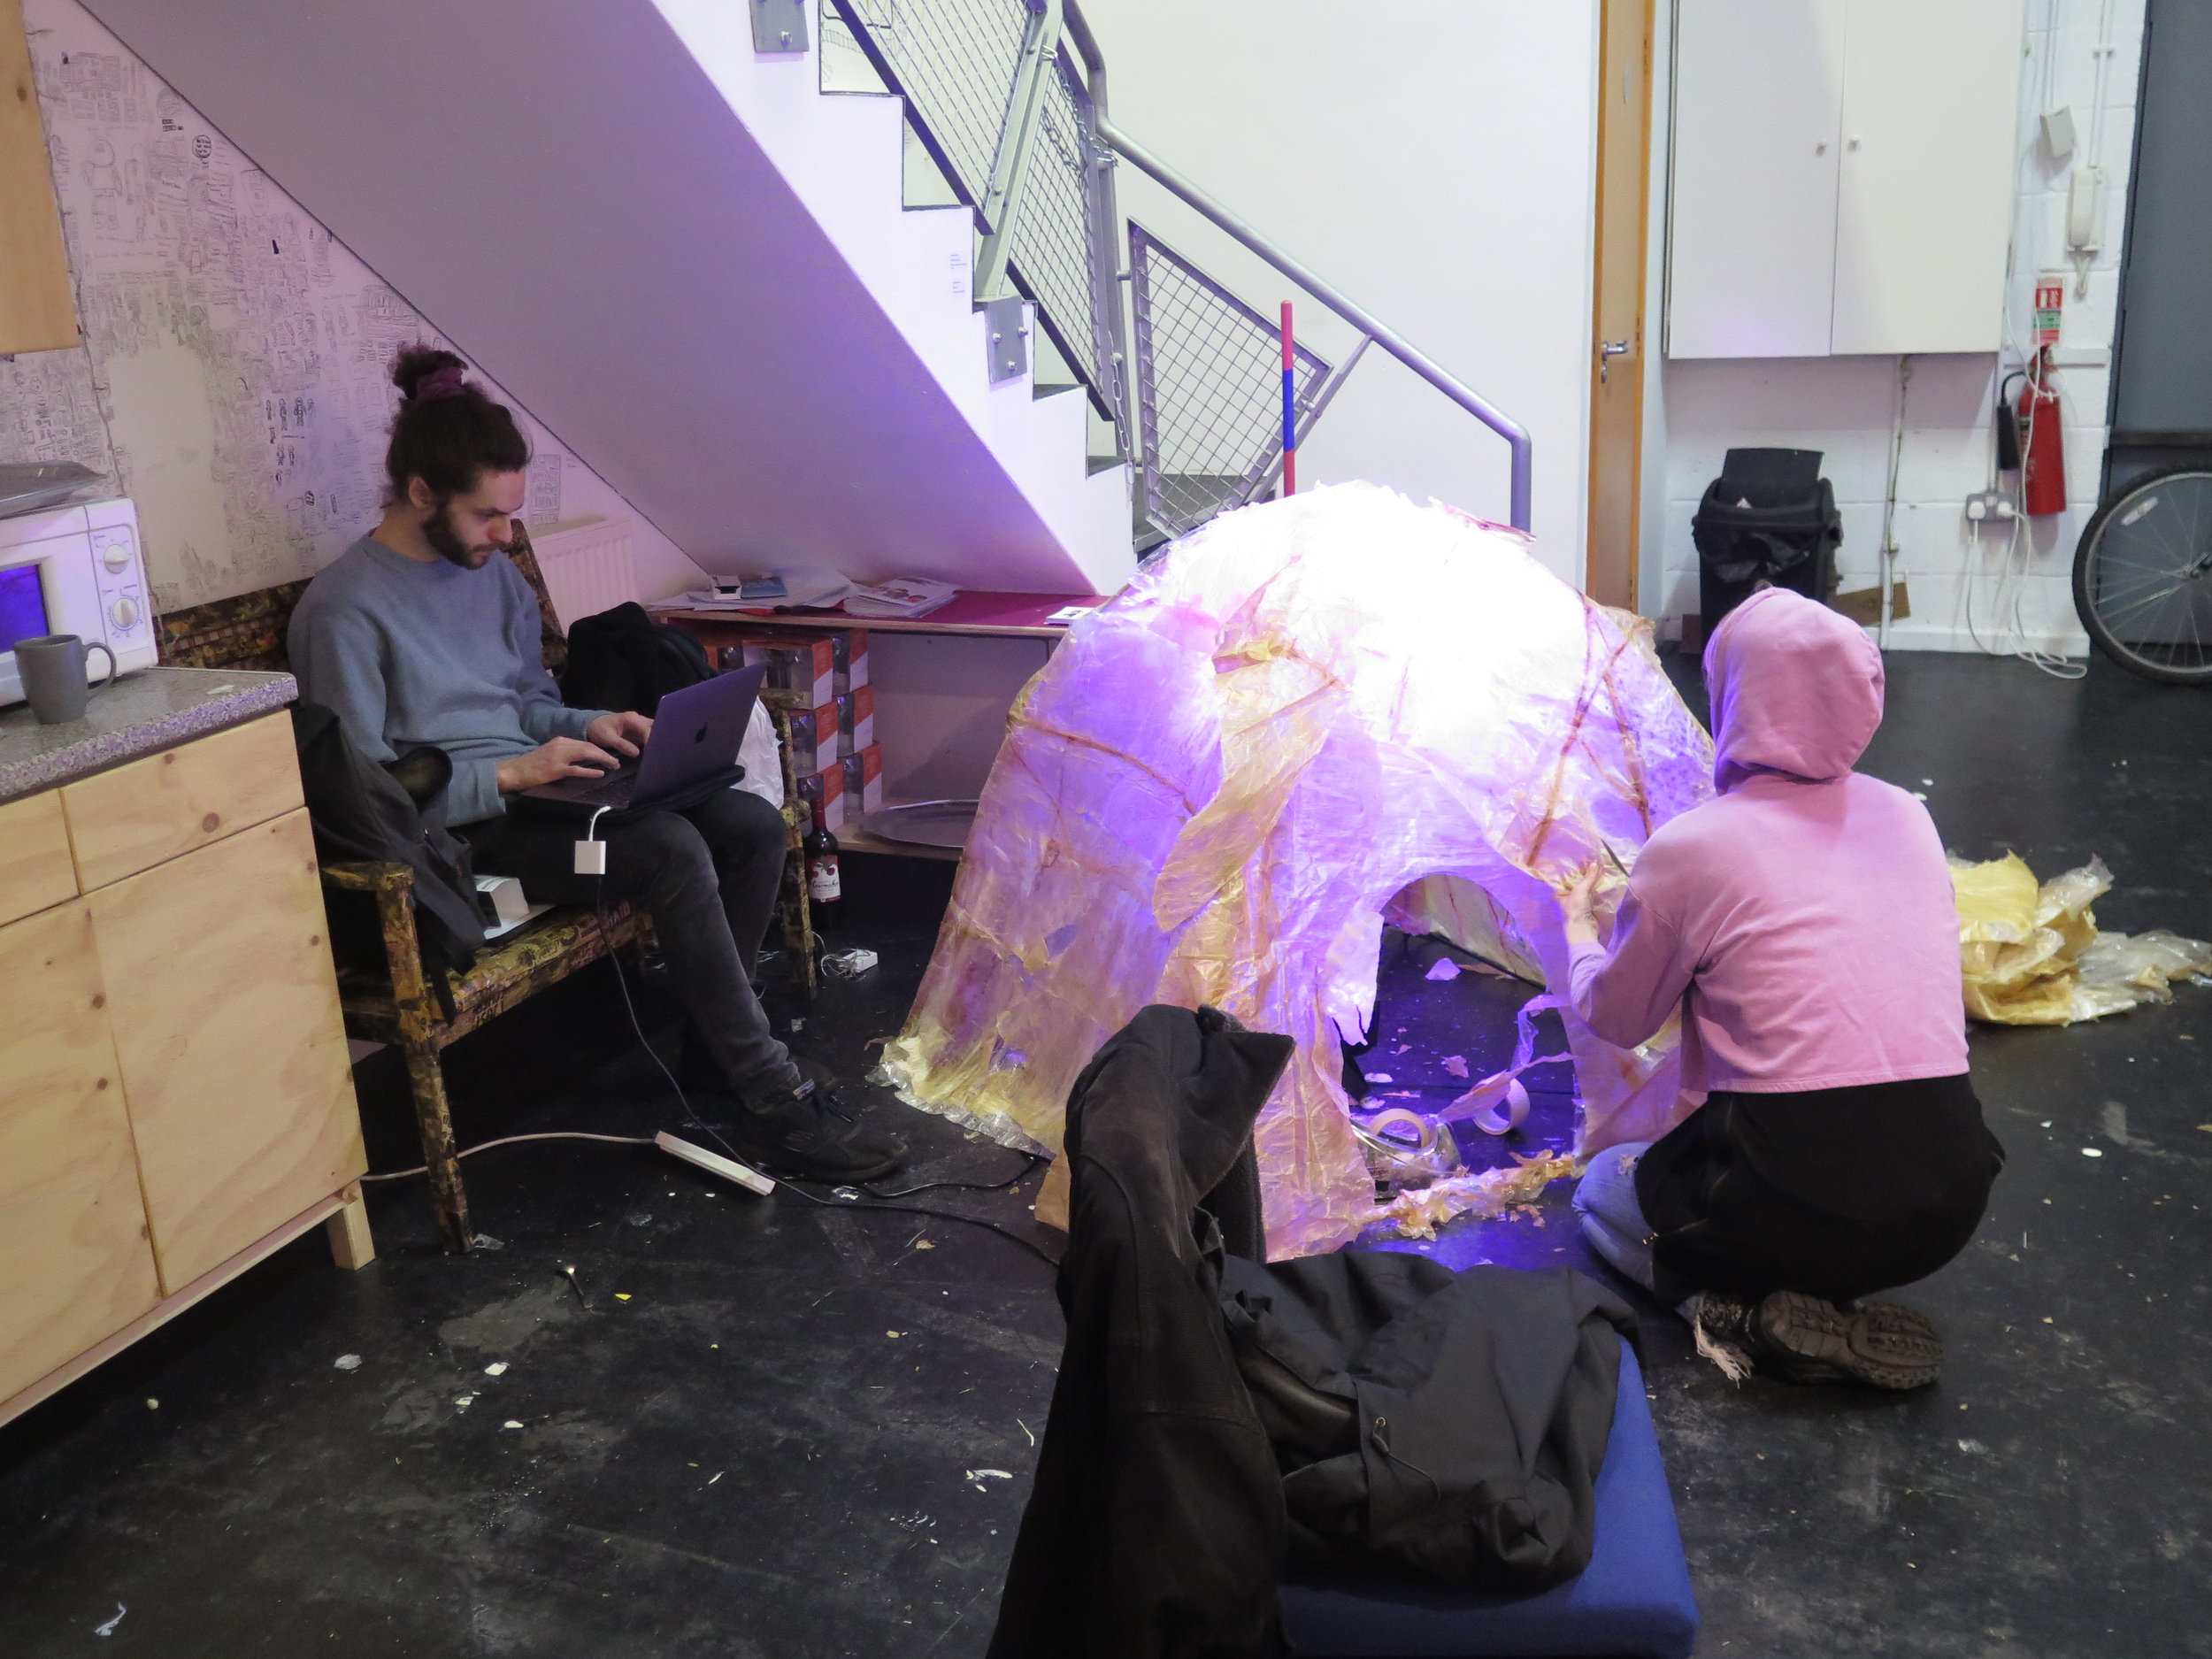 Fran finishing her experimental tent and working with Joe to light it in varying ways. Photo by James Pollitt